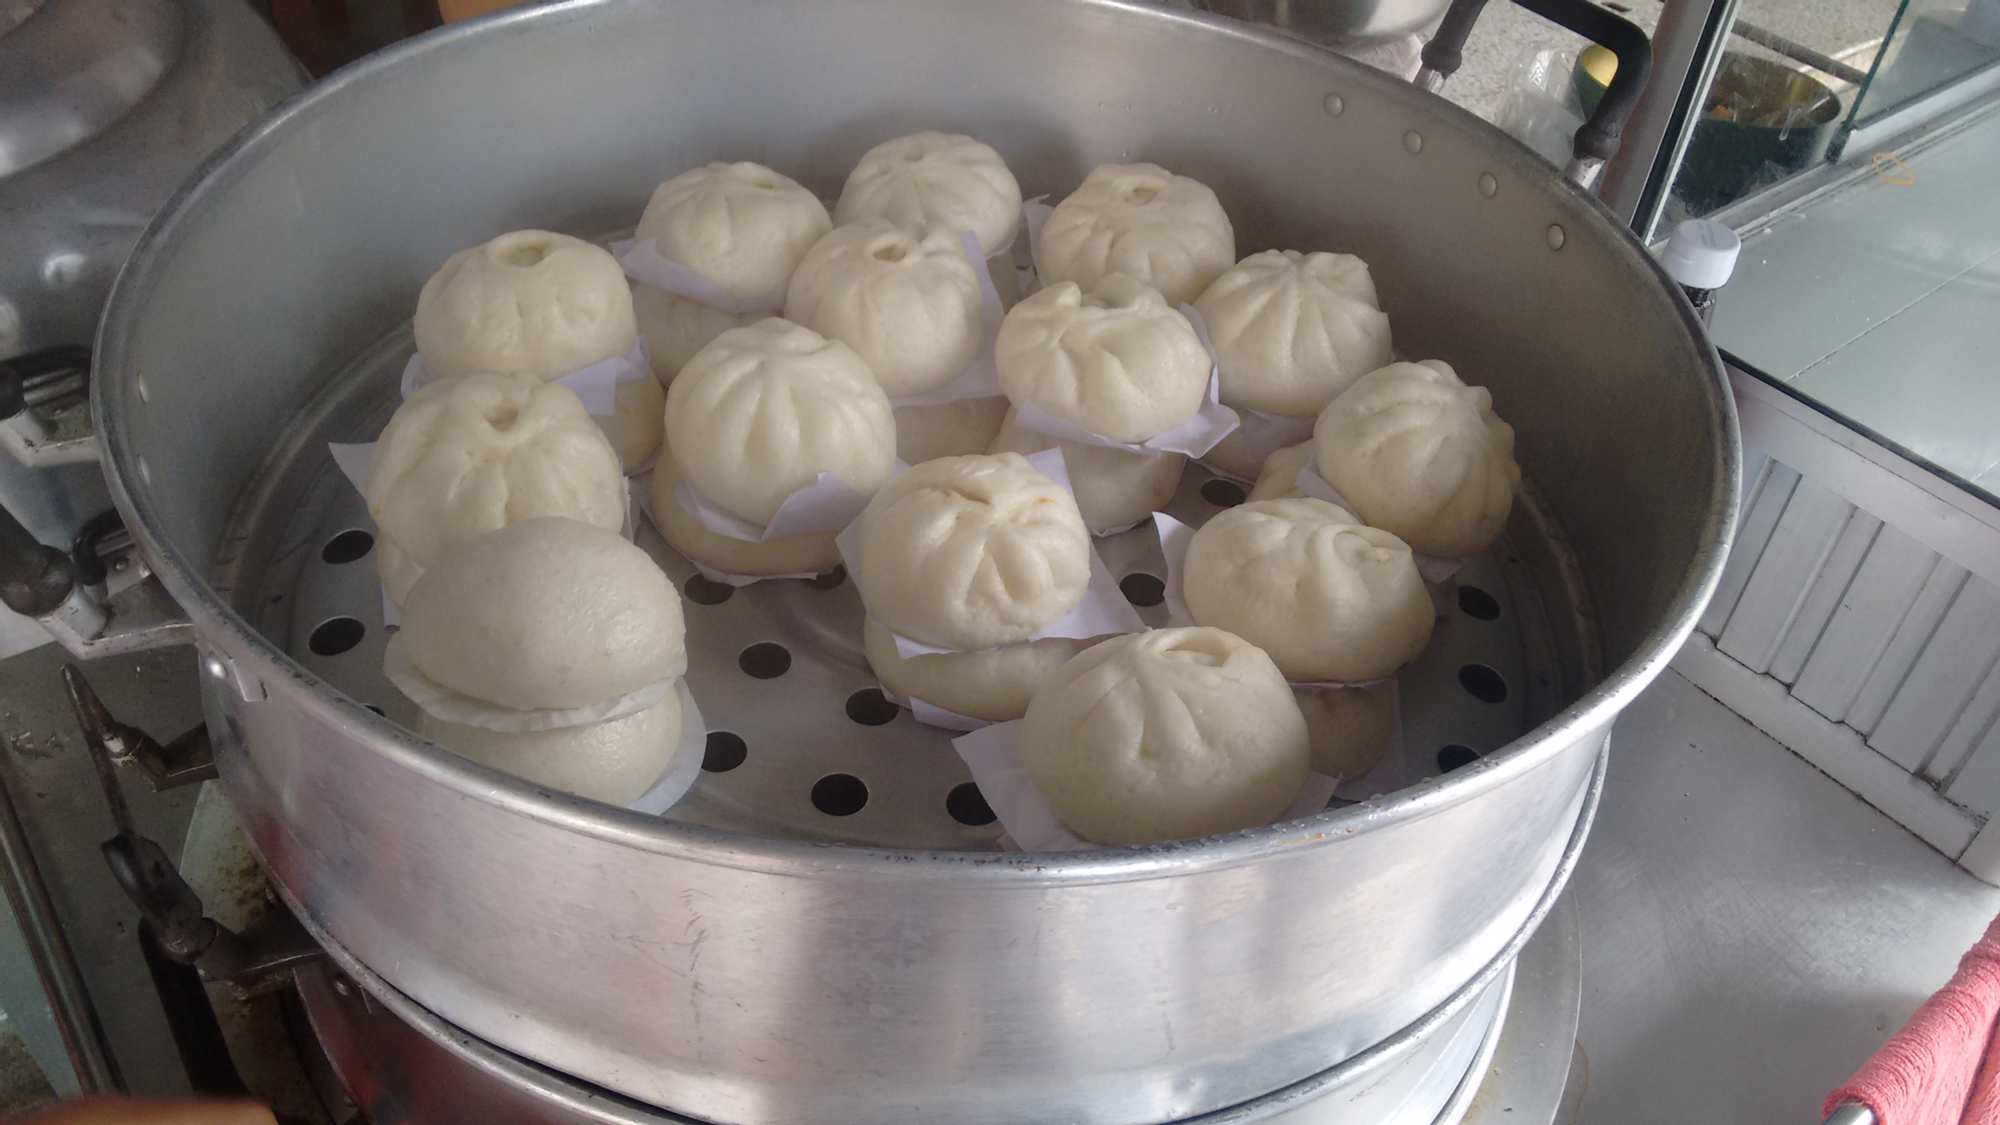 Baozi or bao, filled with meat or taro